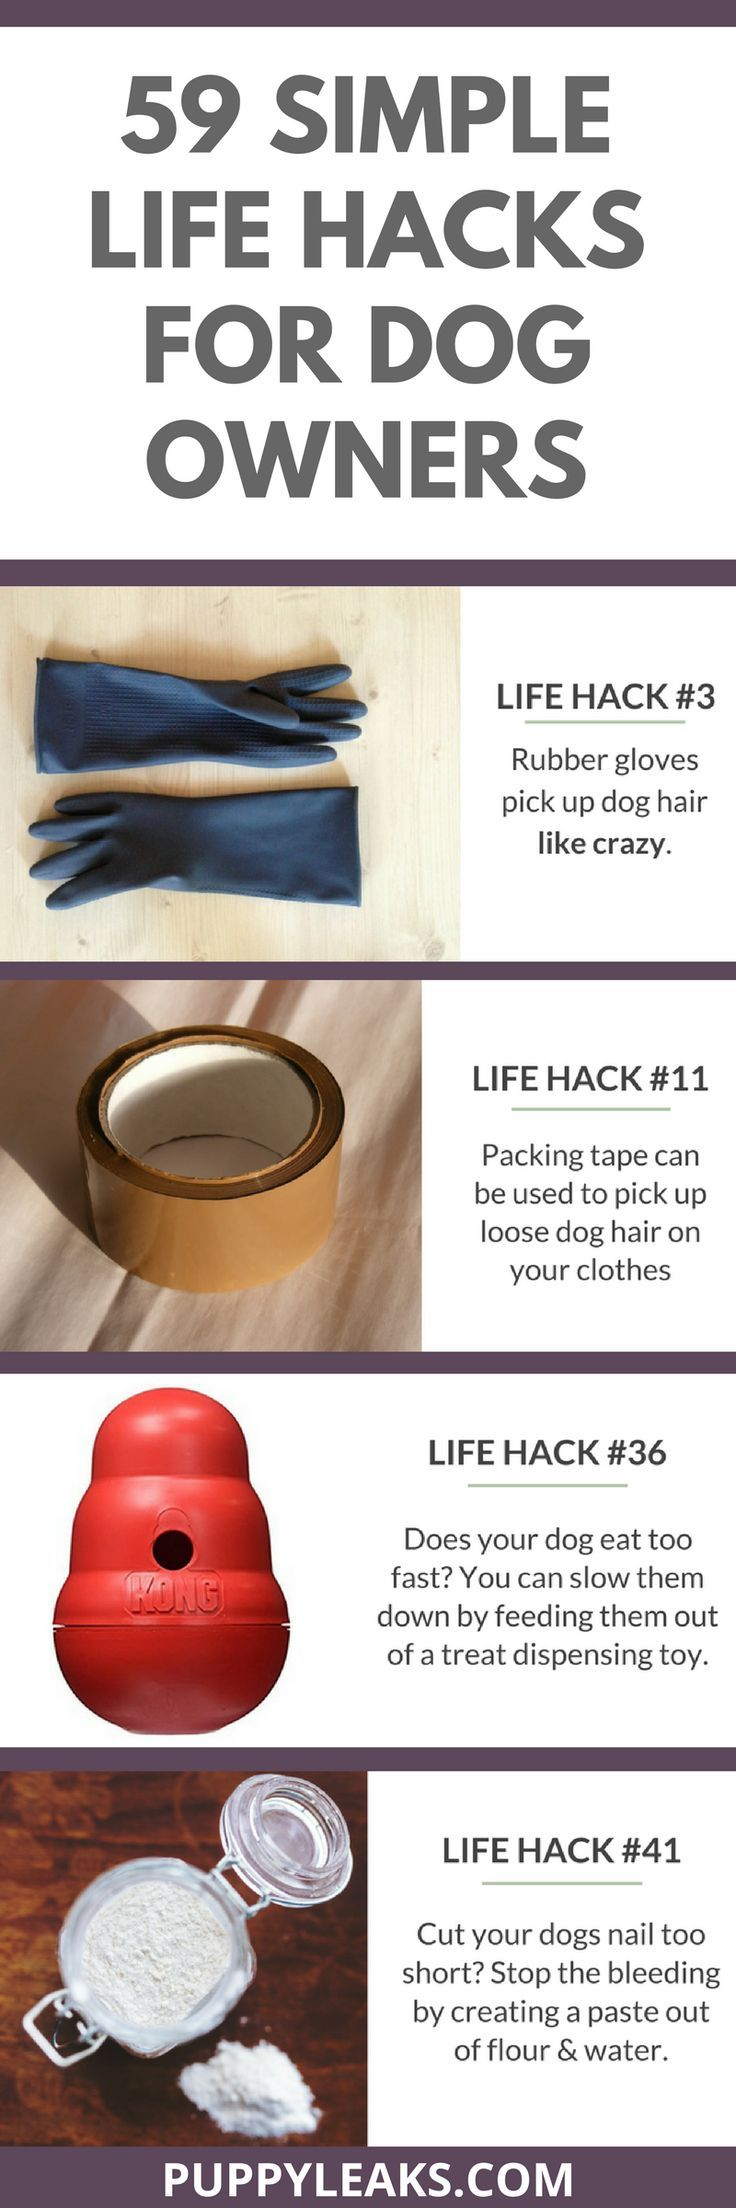 From picking up pet hair with rubber gloves to rotating your dog's toys to keep their interest. Here's 59 simple life hacks for dog owners.